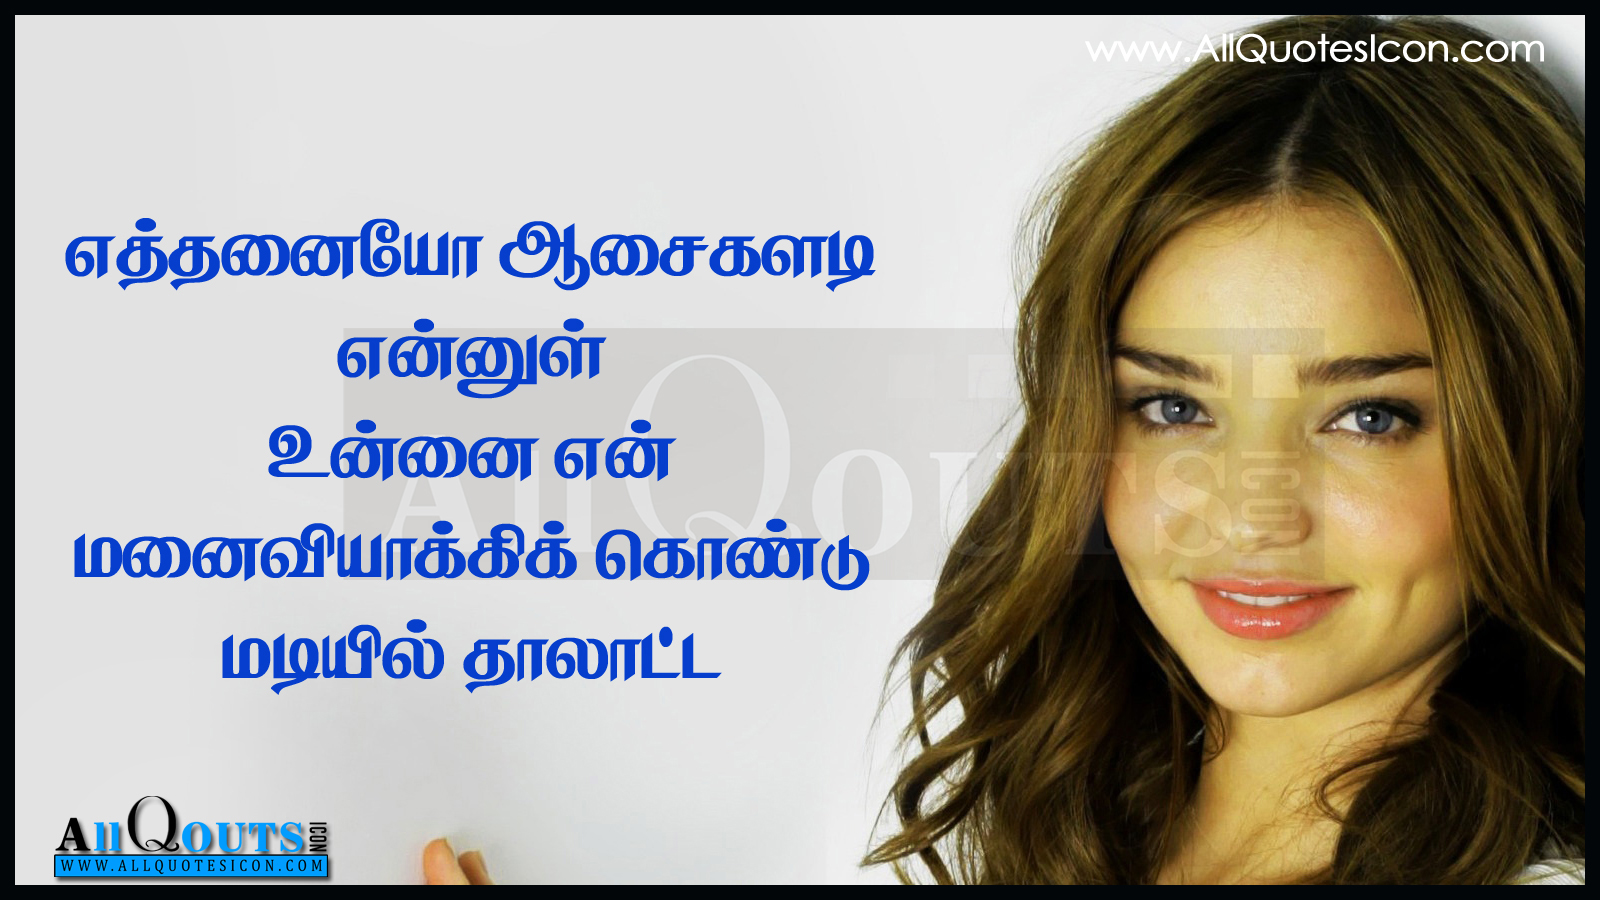 Best Love Feeling And Thoughts Tamil Quotations Hd Wallopapers Top